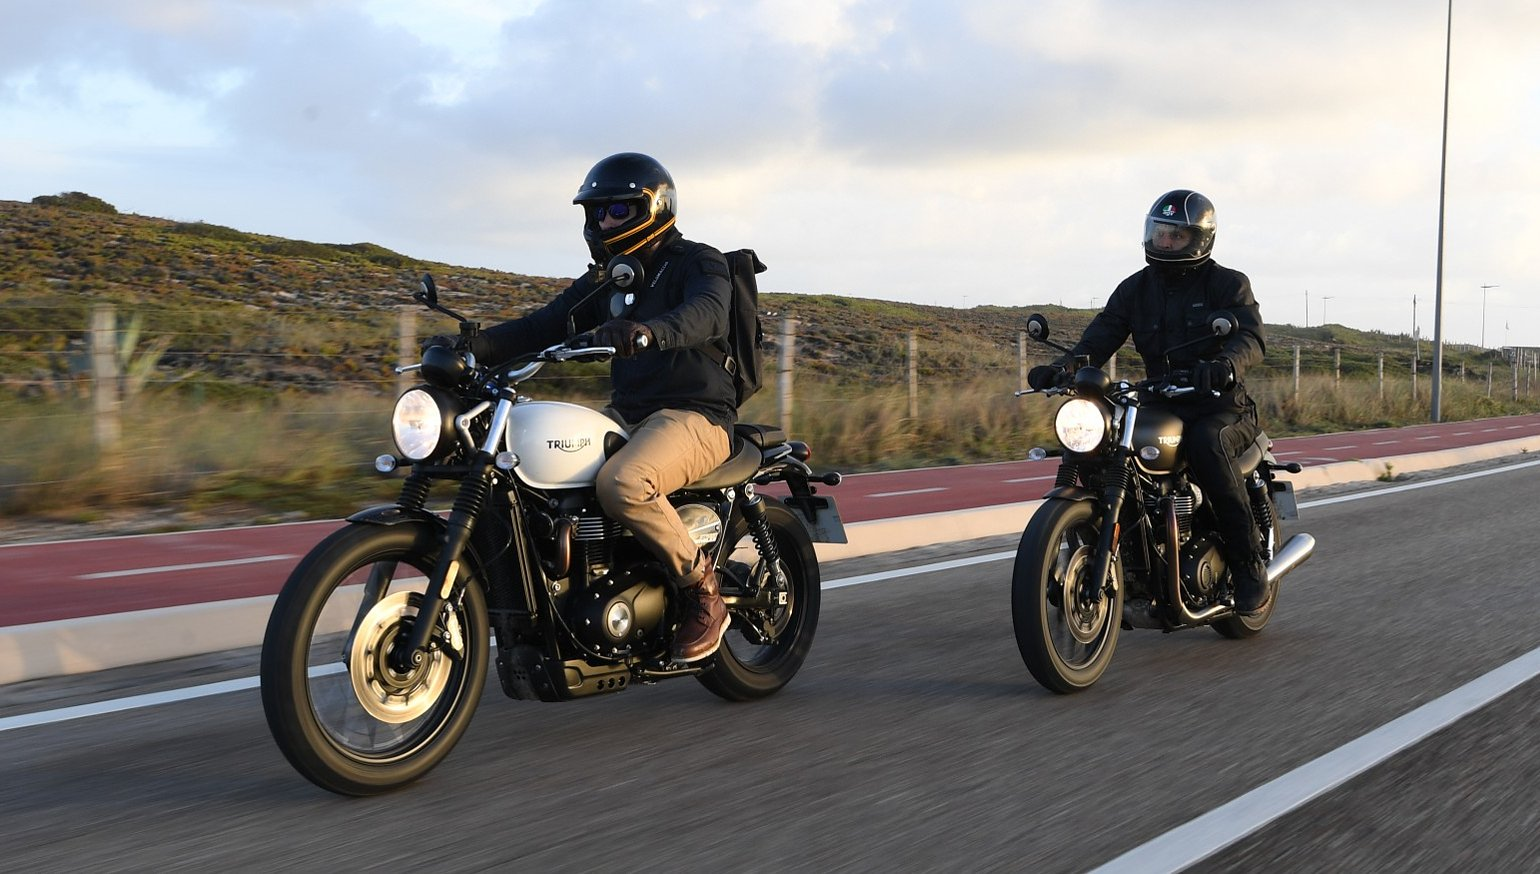 2019 Triumph Street Twin And Street Scrambler First Ride Review